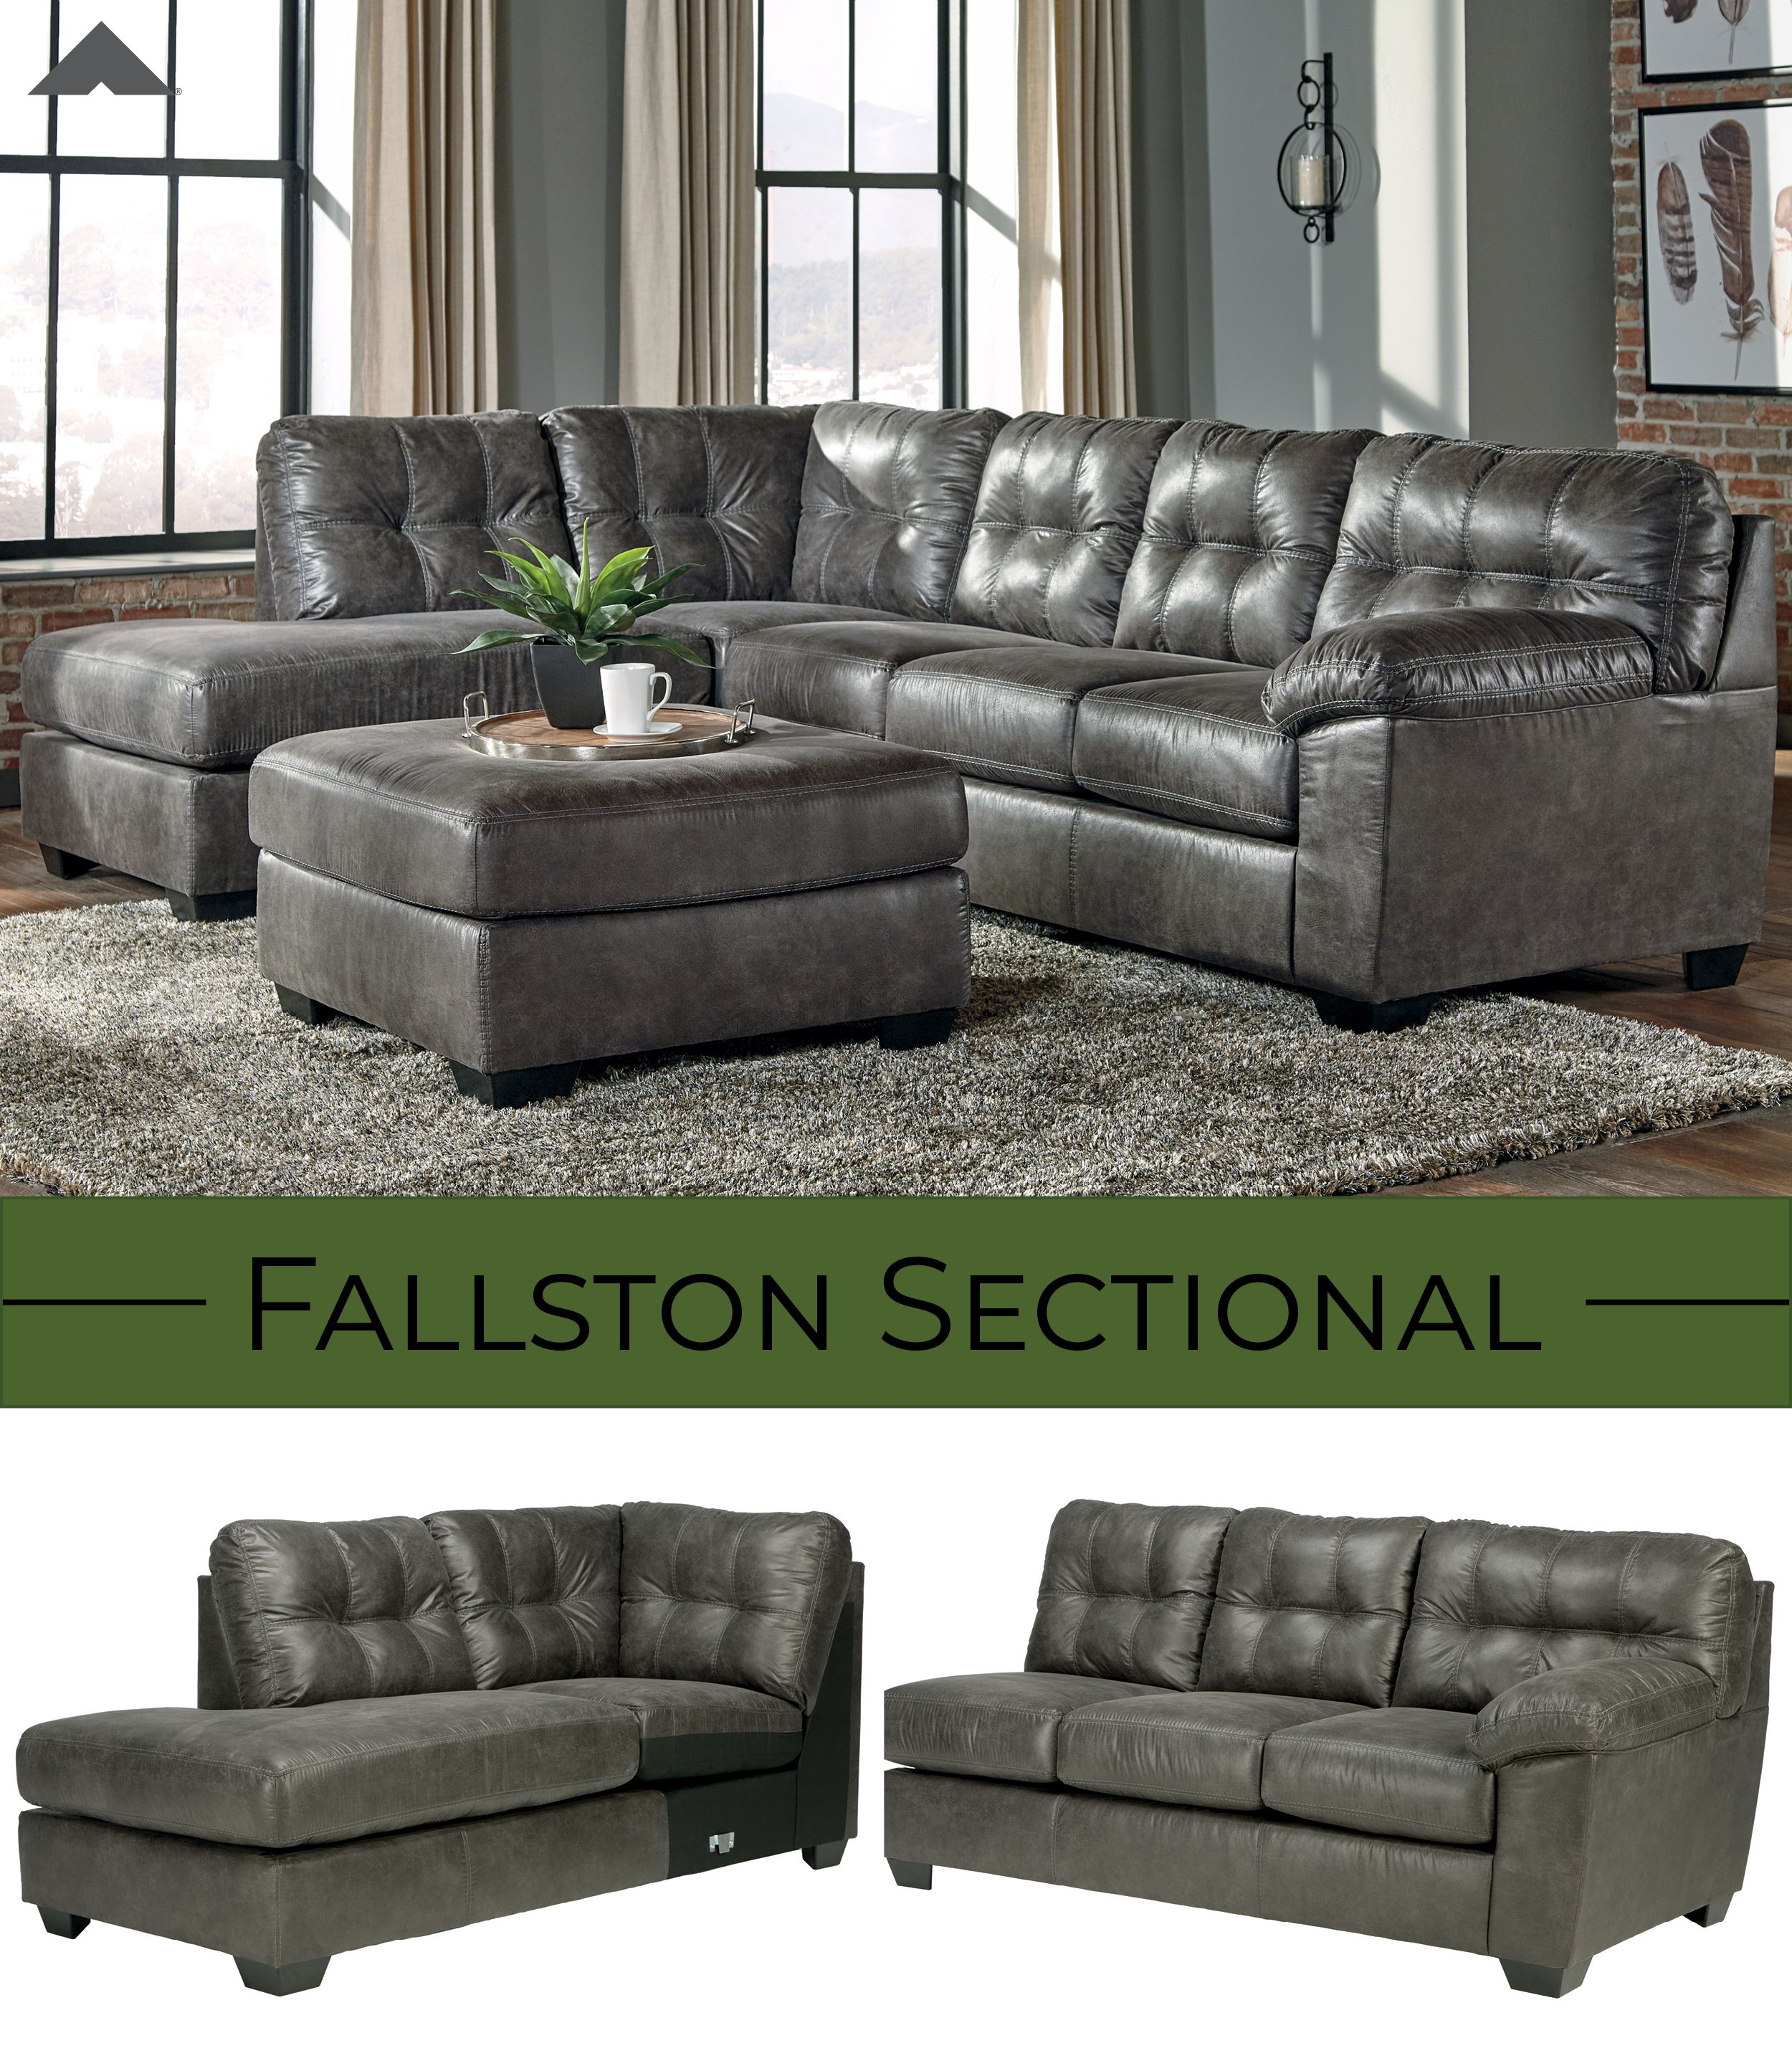 Fallston Contemporary Sectional By Ashley Furniture